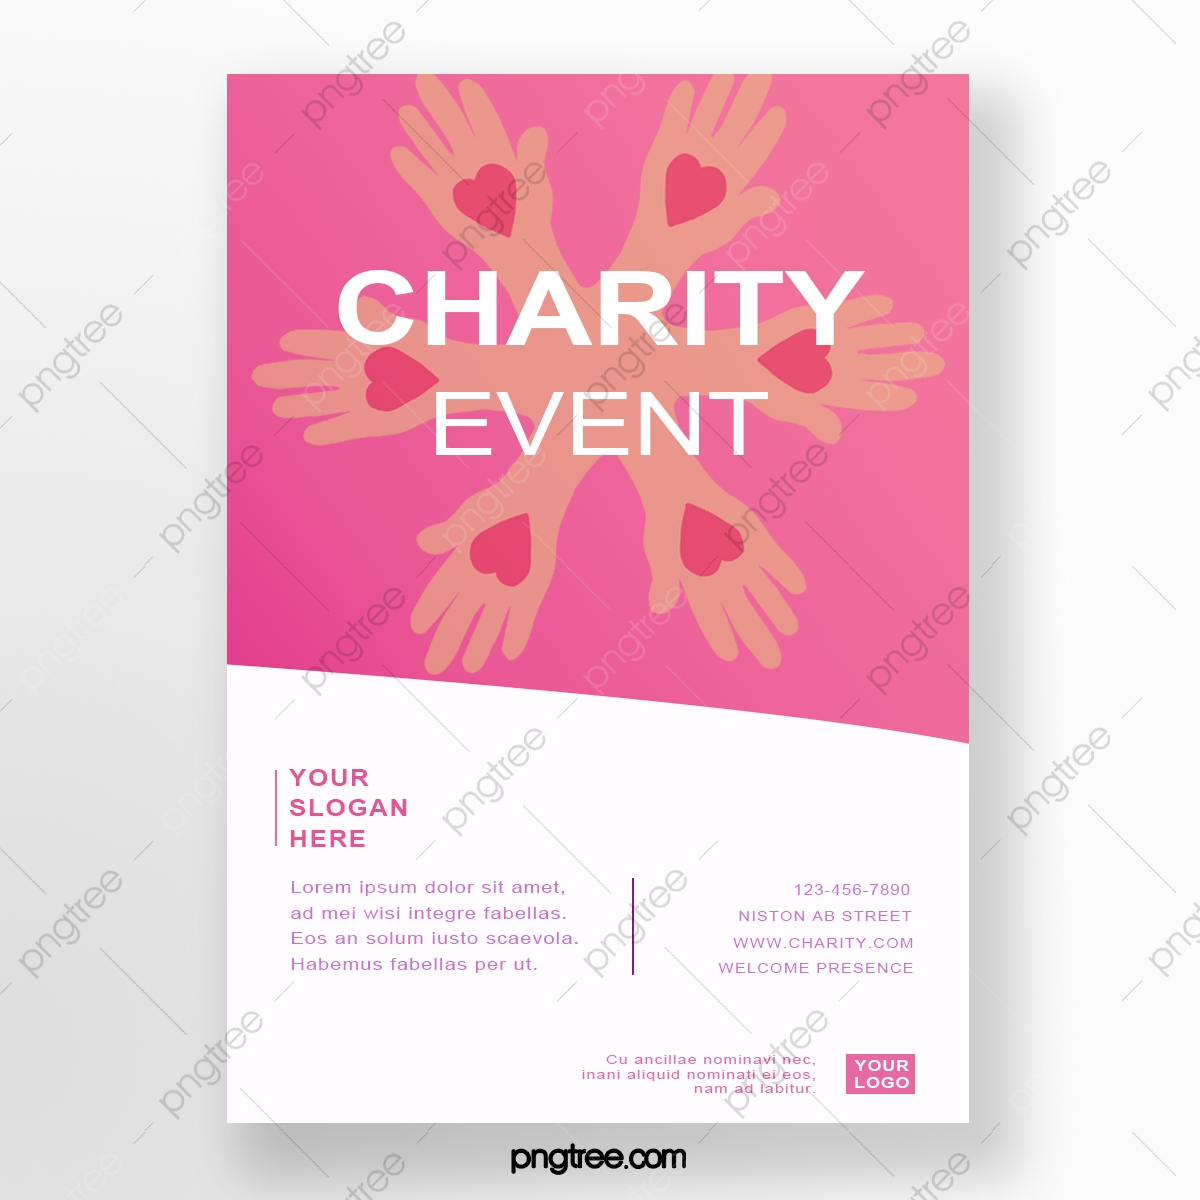 https pngtree com freepng charity fundraising event poster 4943946 html